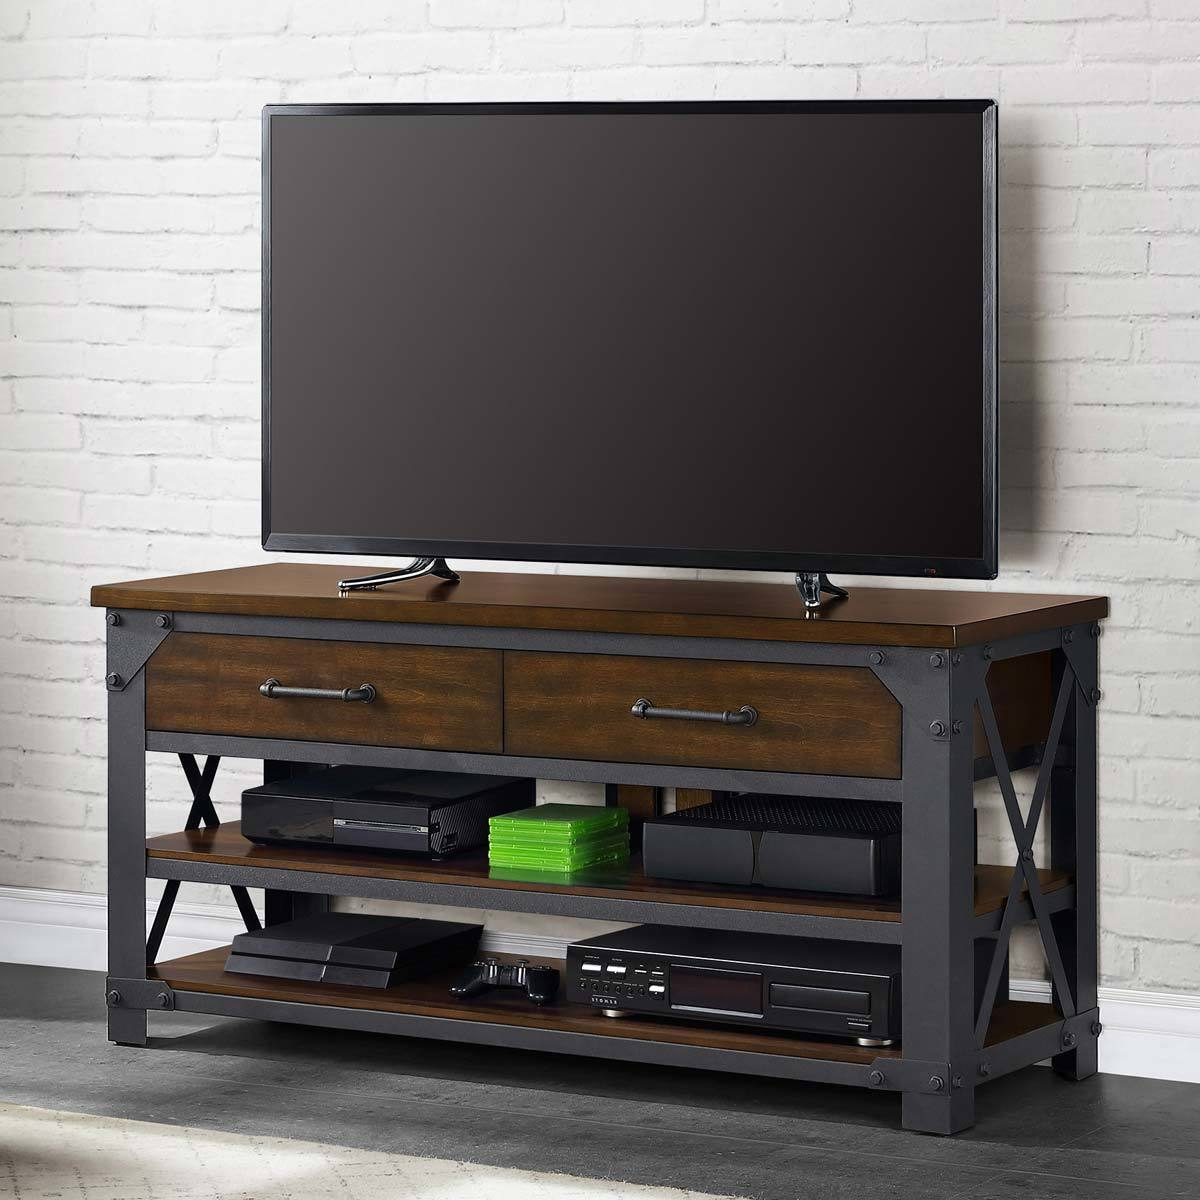 Bayside Furnishings Logan 3 In 1 Tv Stand For Tvs Up To 65 Inside Well Known Logan Tv Stands (View 7 of 10)